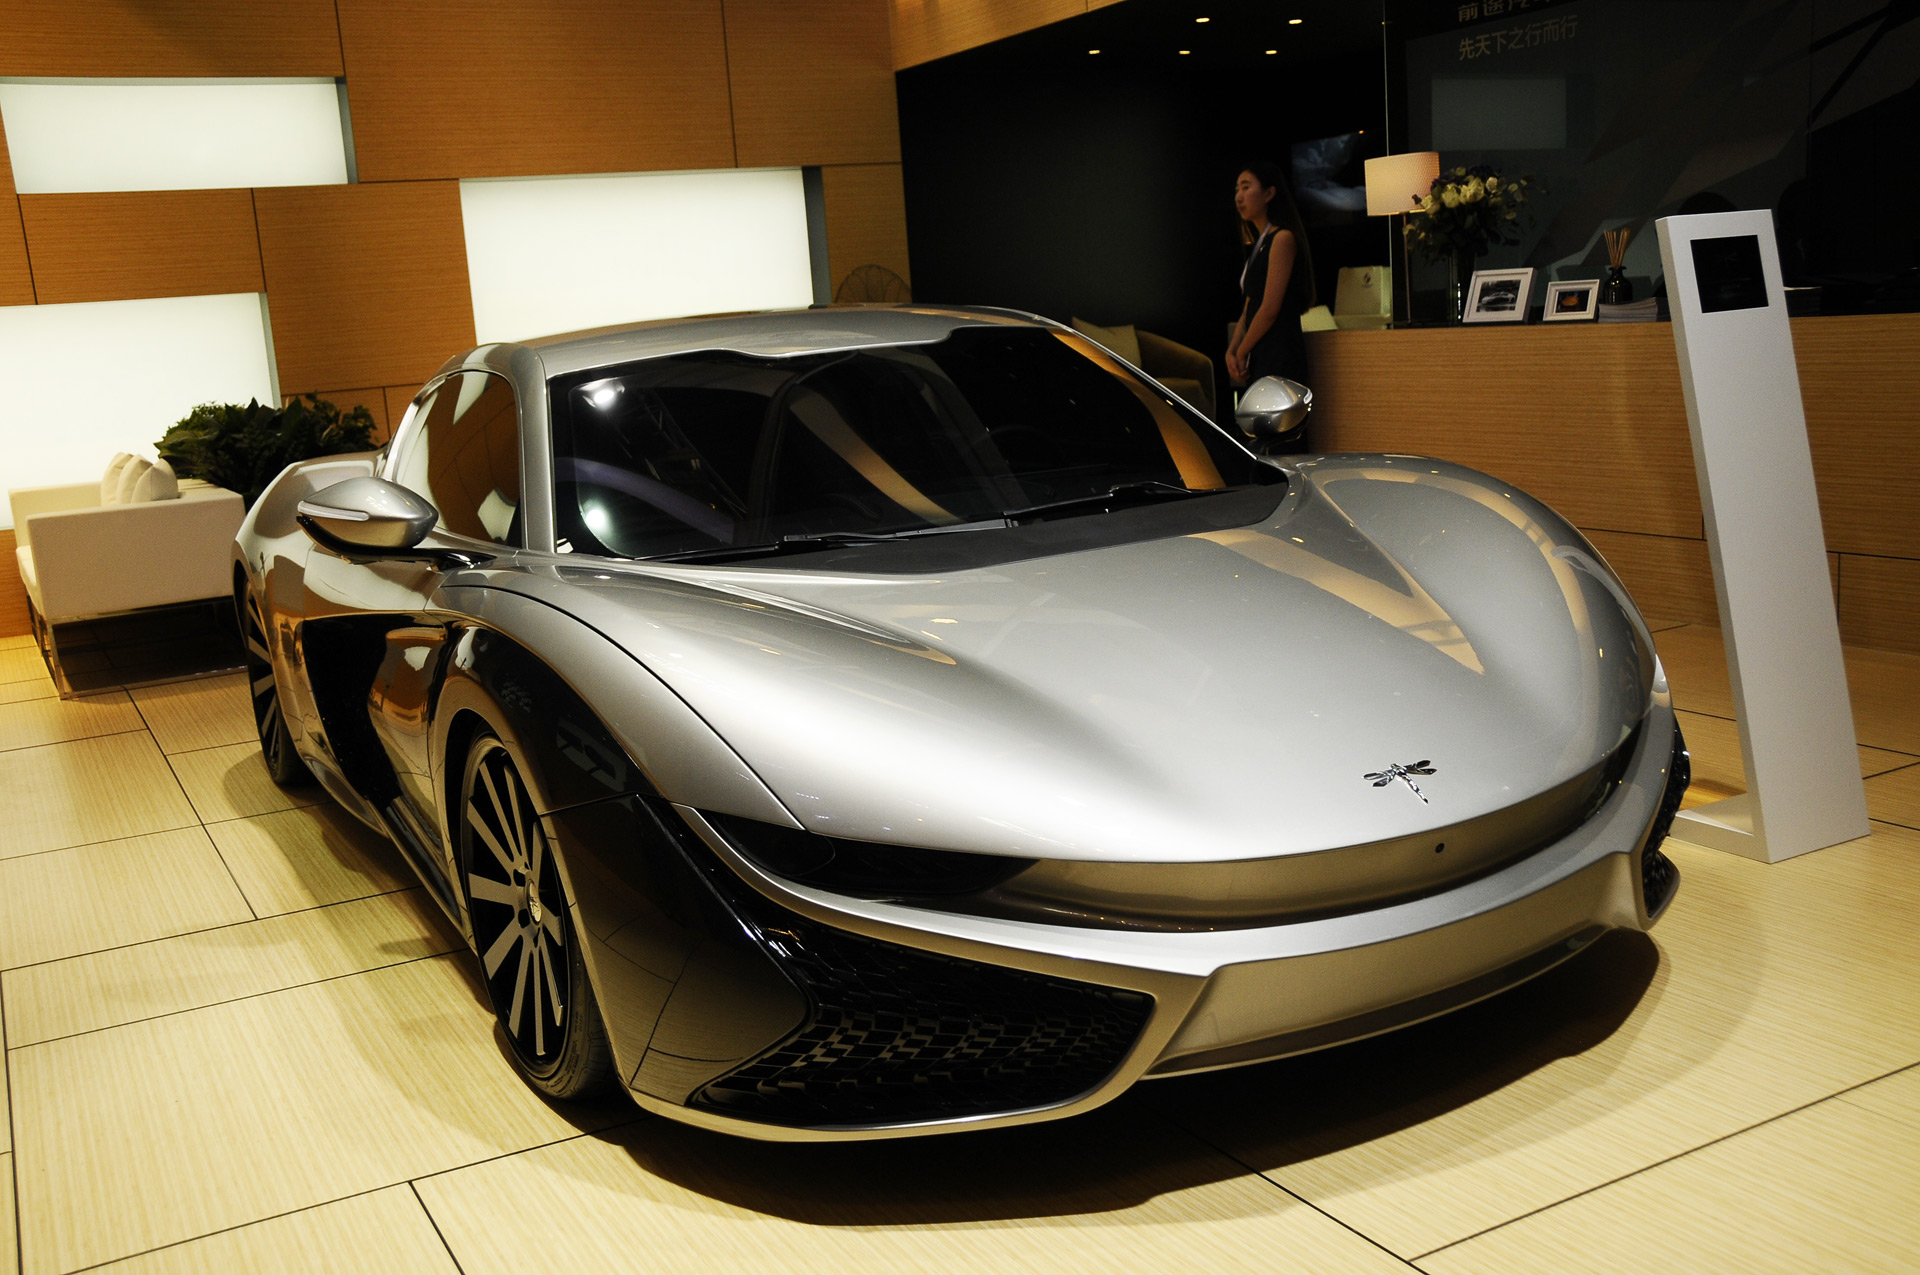 Electric Car Startup Qiantu Eyes U.S. For K50 Sports Car